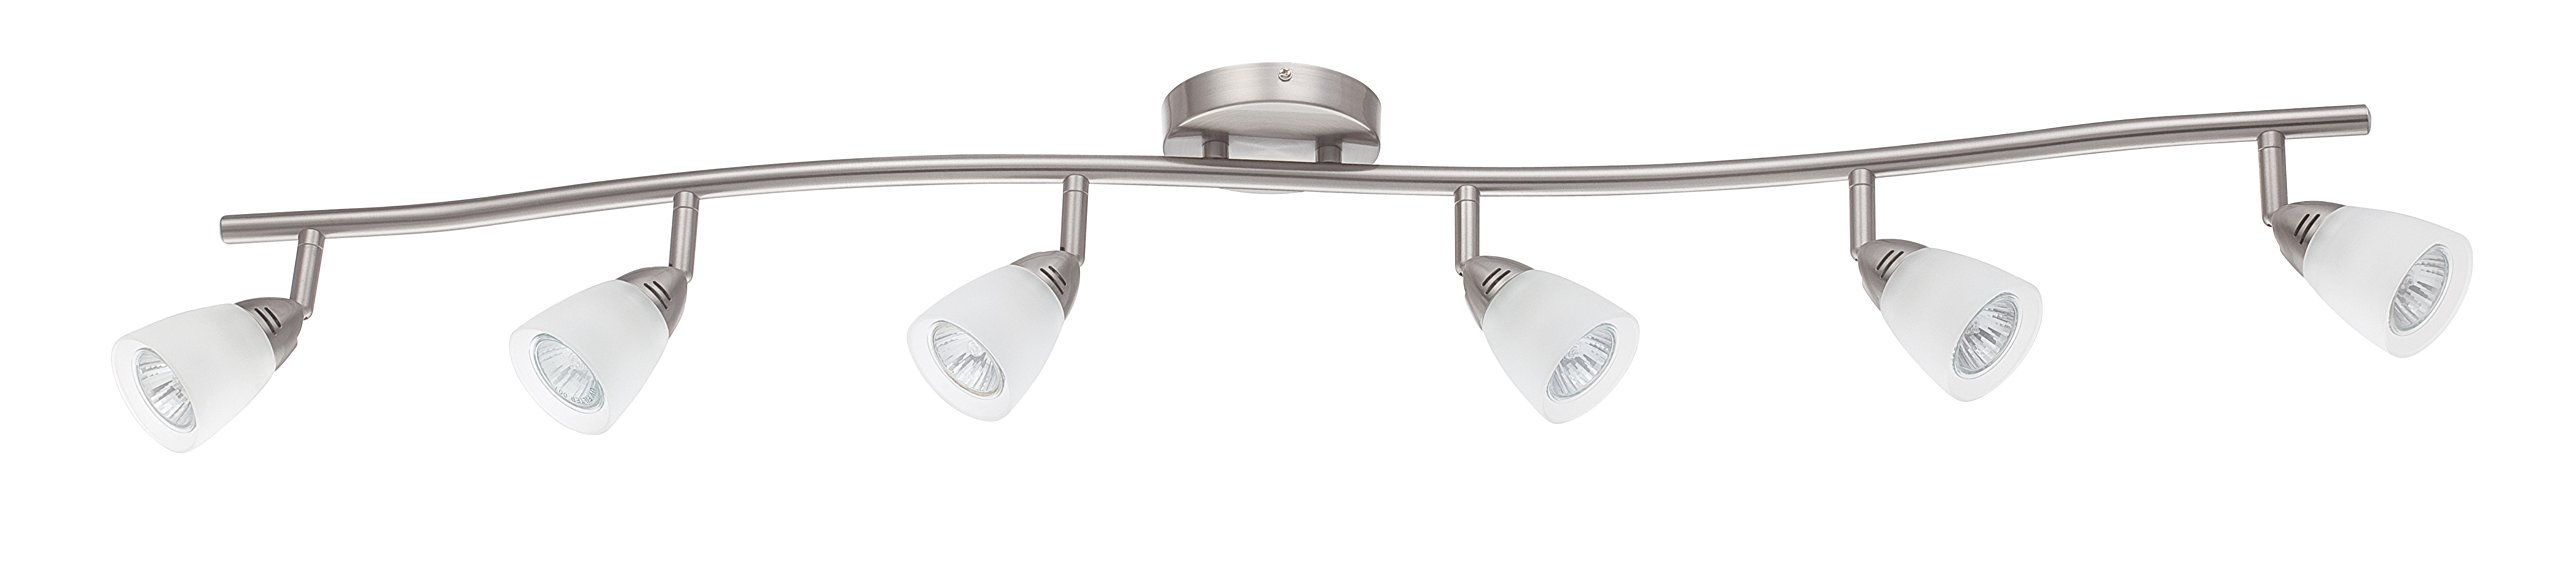 Luminance F2988-80 Contemporary 6 Halogen Track Light with Bright Satin Nickel Finish